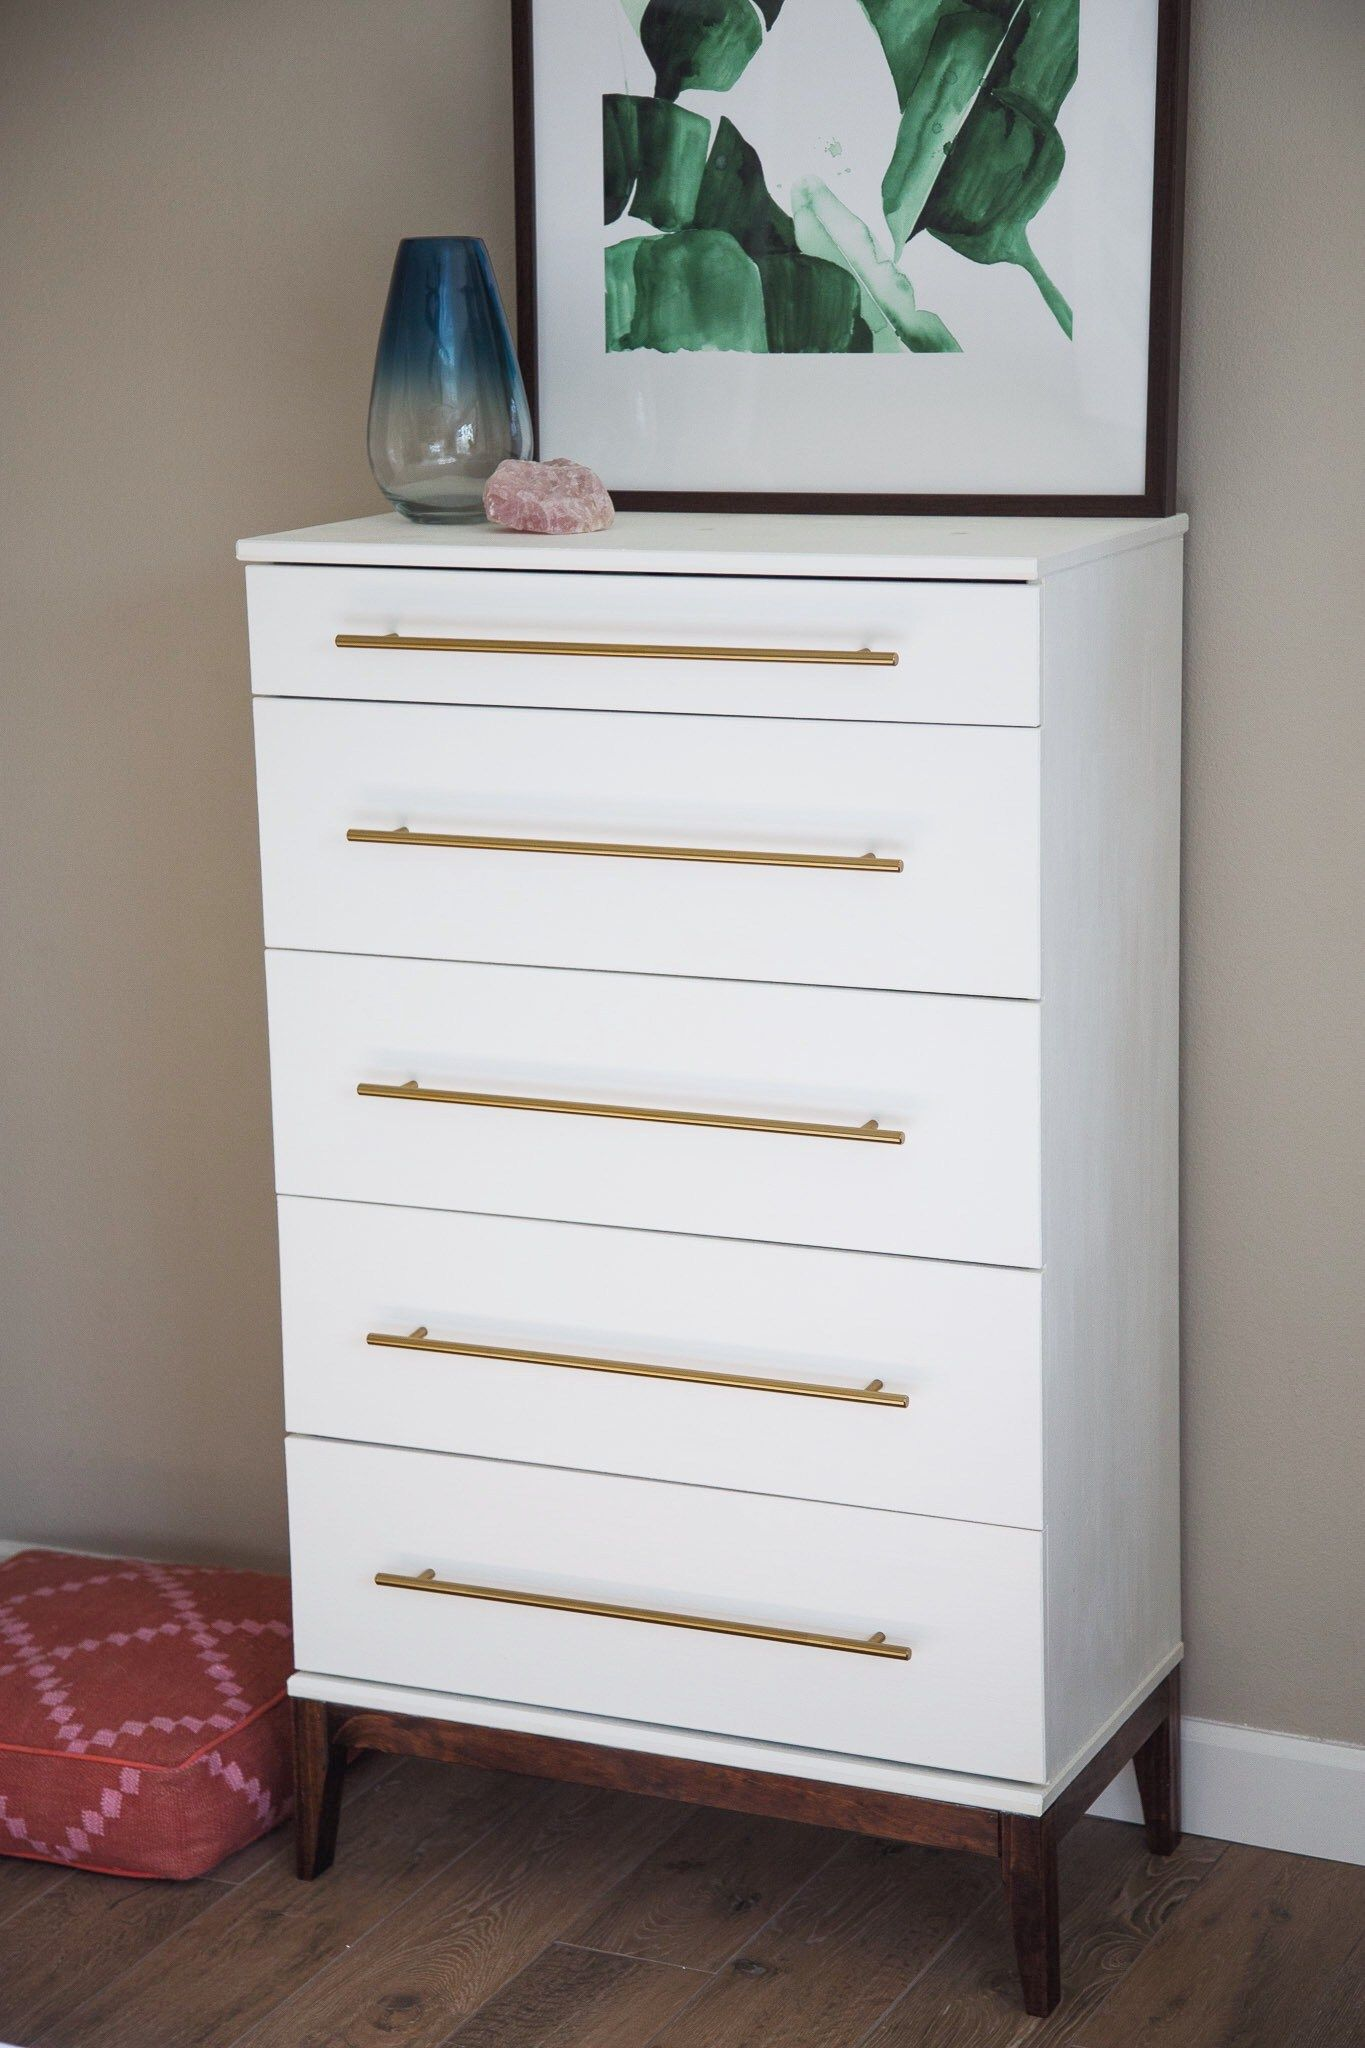 I Went For Another Ikea Hack On The Tarva Dresser This Time On